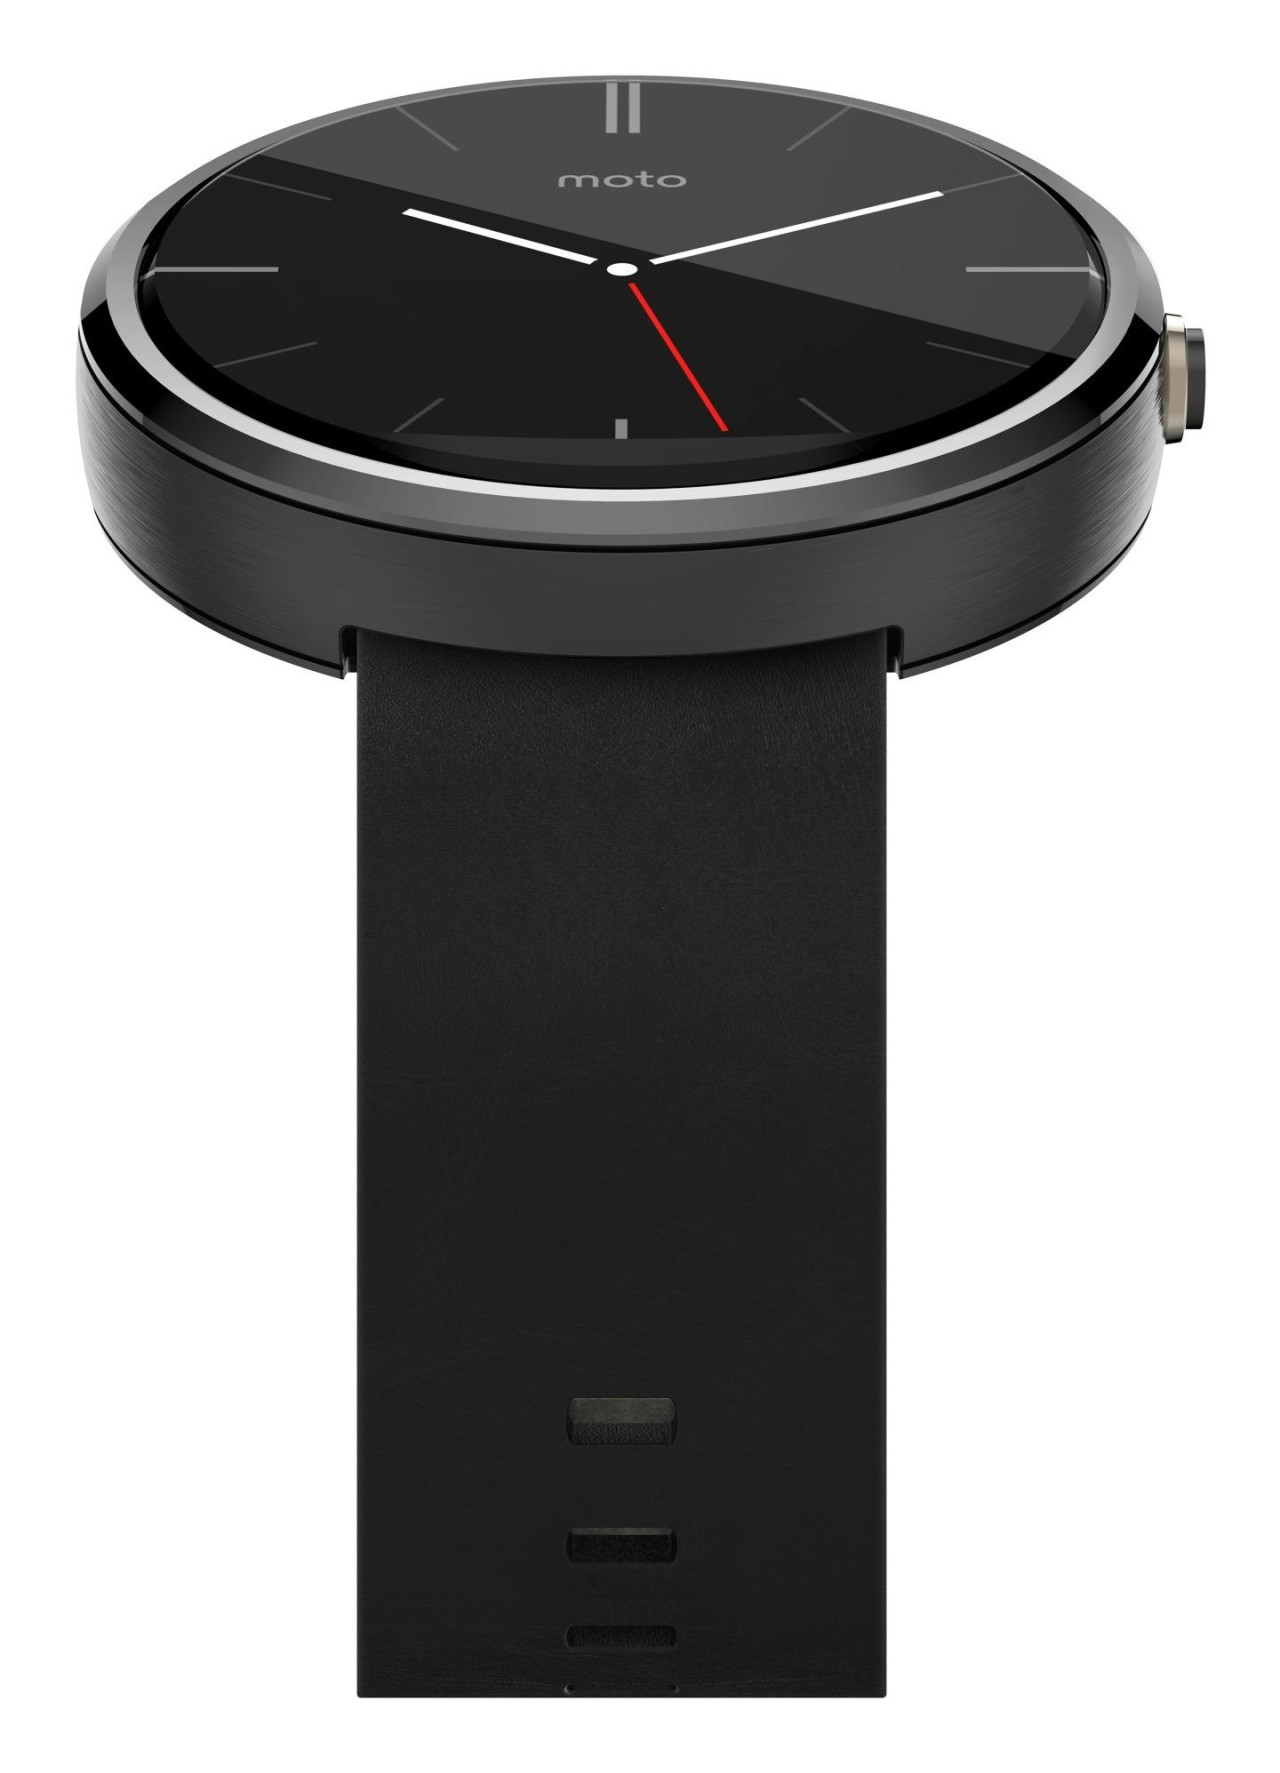 Moto 360 Press Images 7 1280x1773 - The Moto 360 is now available for $250